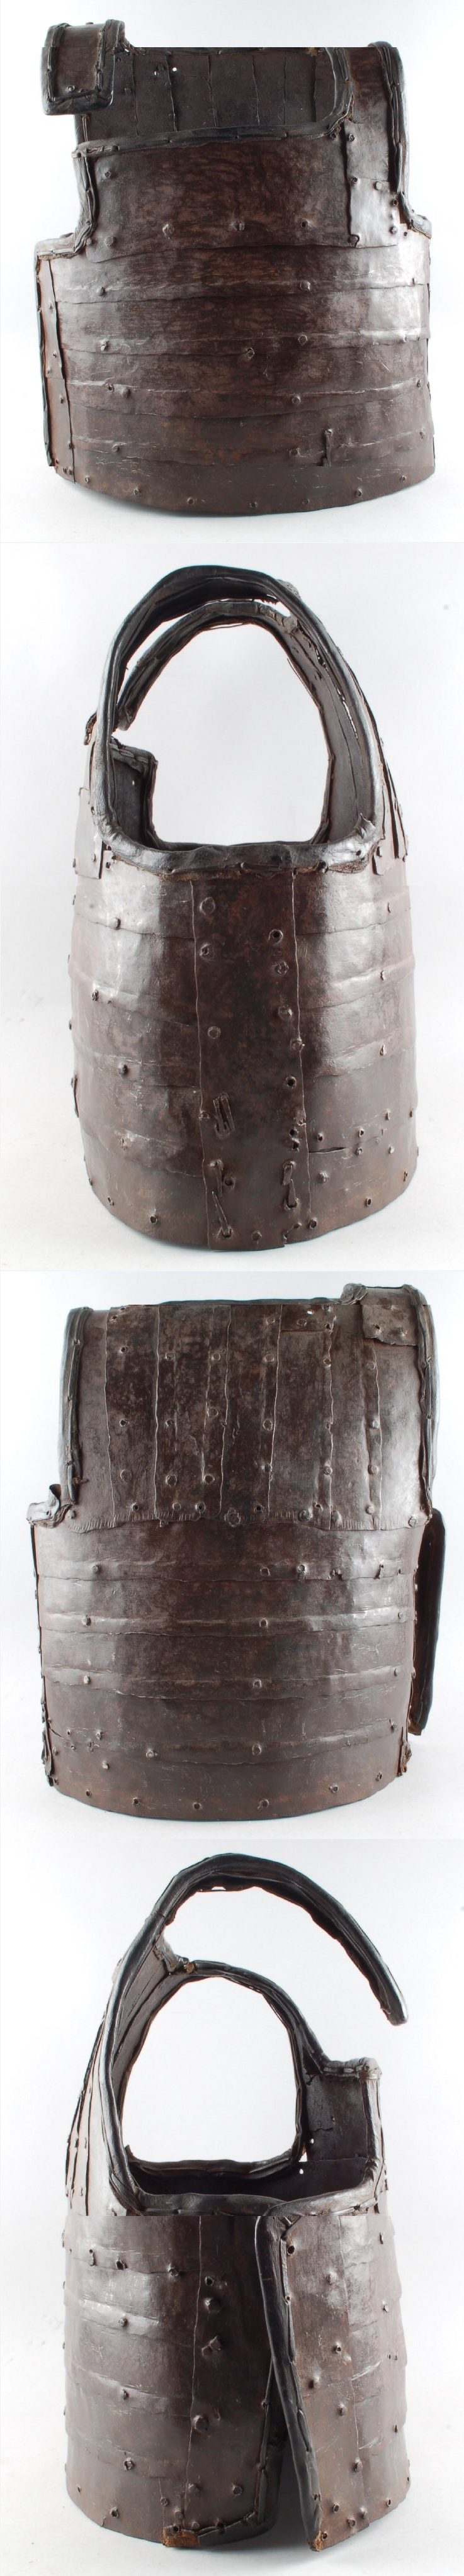 African cuirass, Bornu, iron and leather. The British Museum. The Bornu Empire (1380–1893) was a state of what is now northeastern Nigeria from 1380 to 1893. It was a continuation of the great Kanem Empire founded centuries earlier by the Sayfawa Dynasty. In time it would become even larger than Kanem, incorporating areas that are today parts of Chad, Niger and Cameroon.